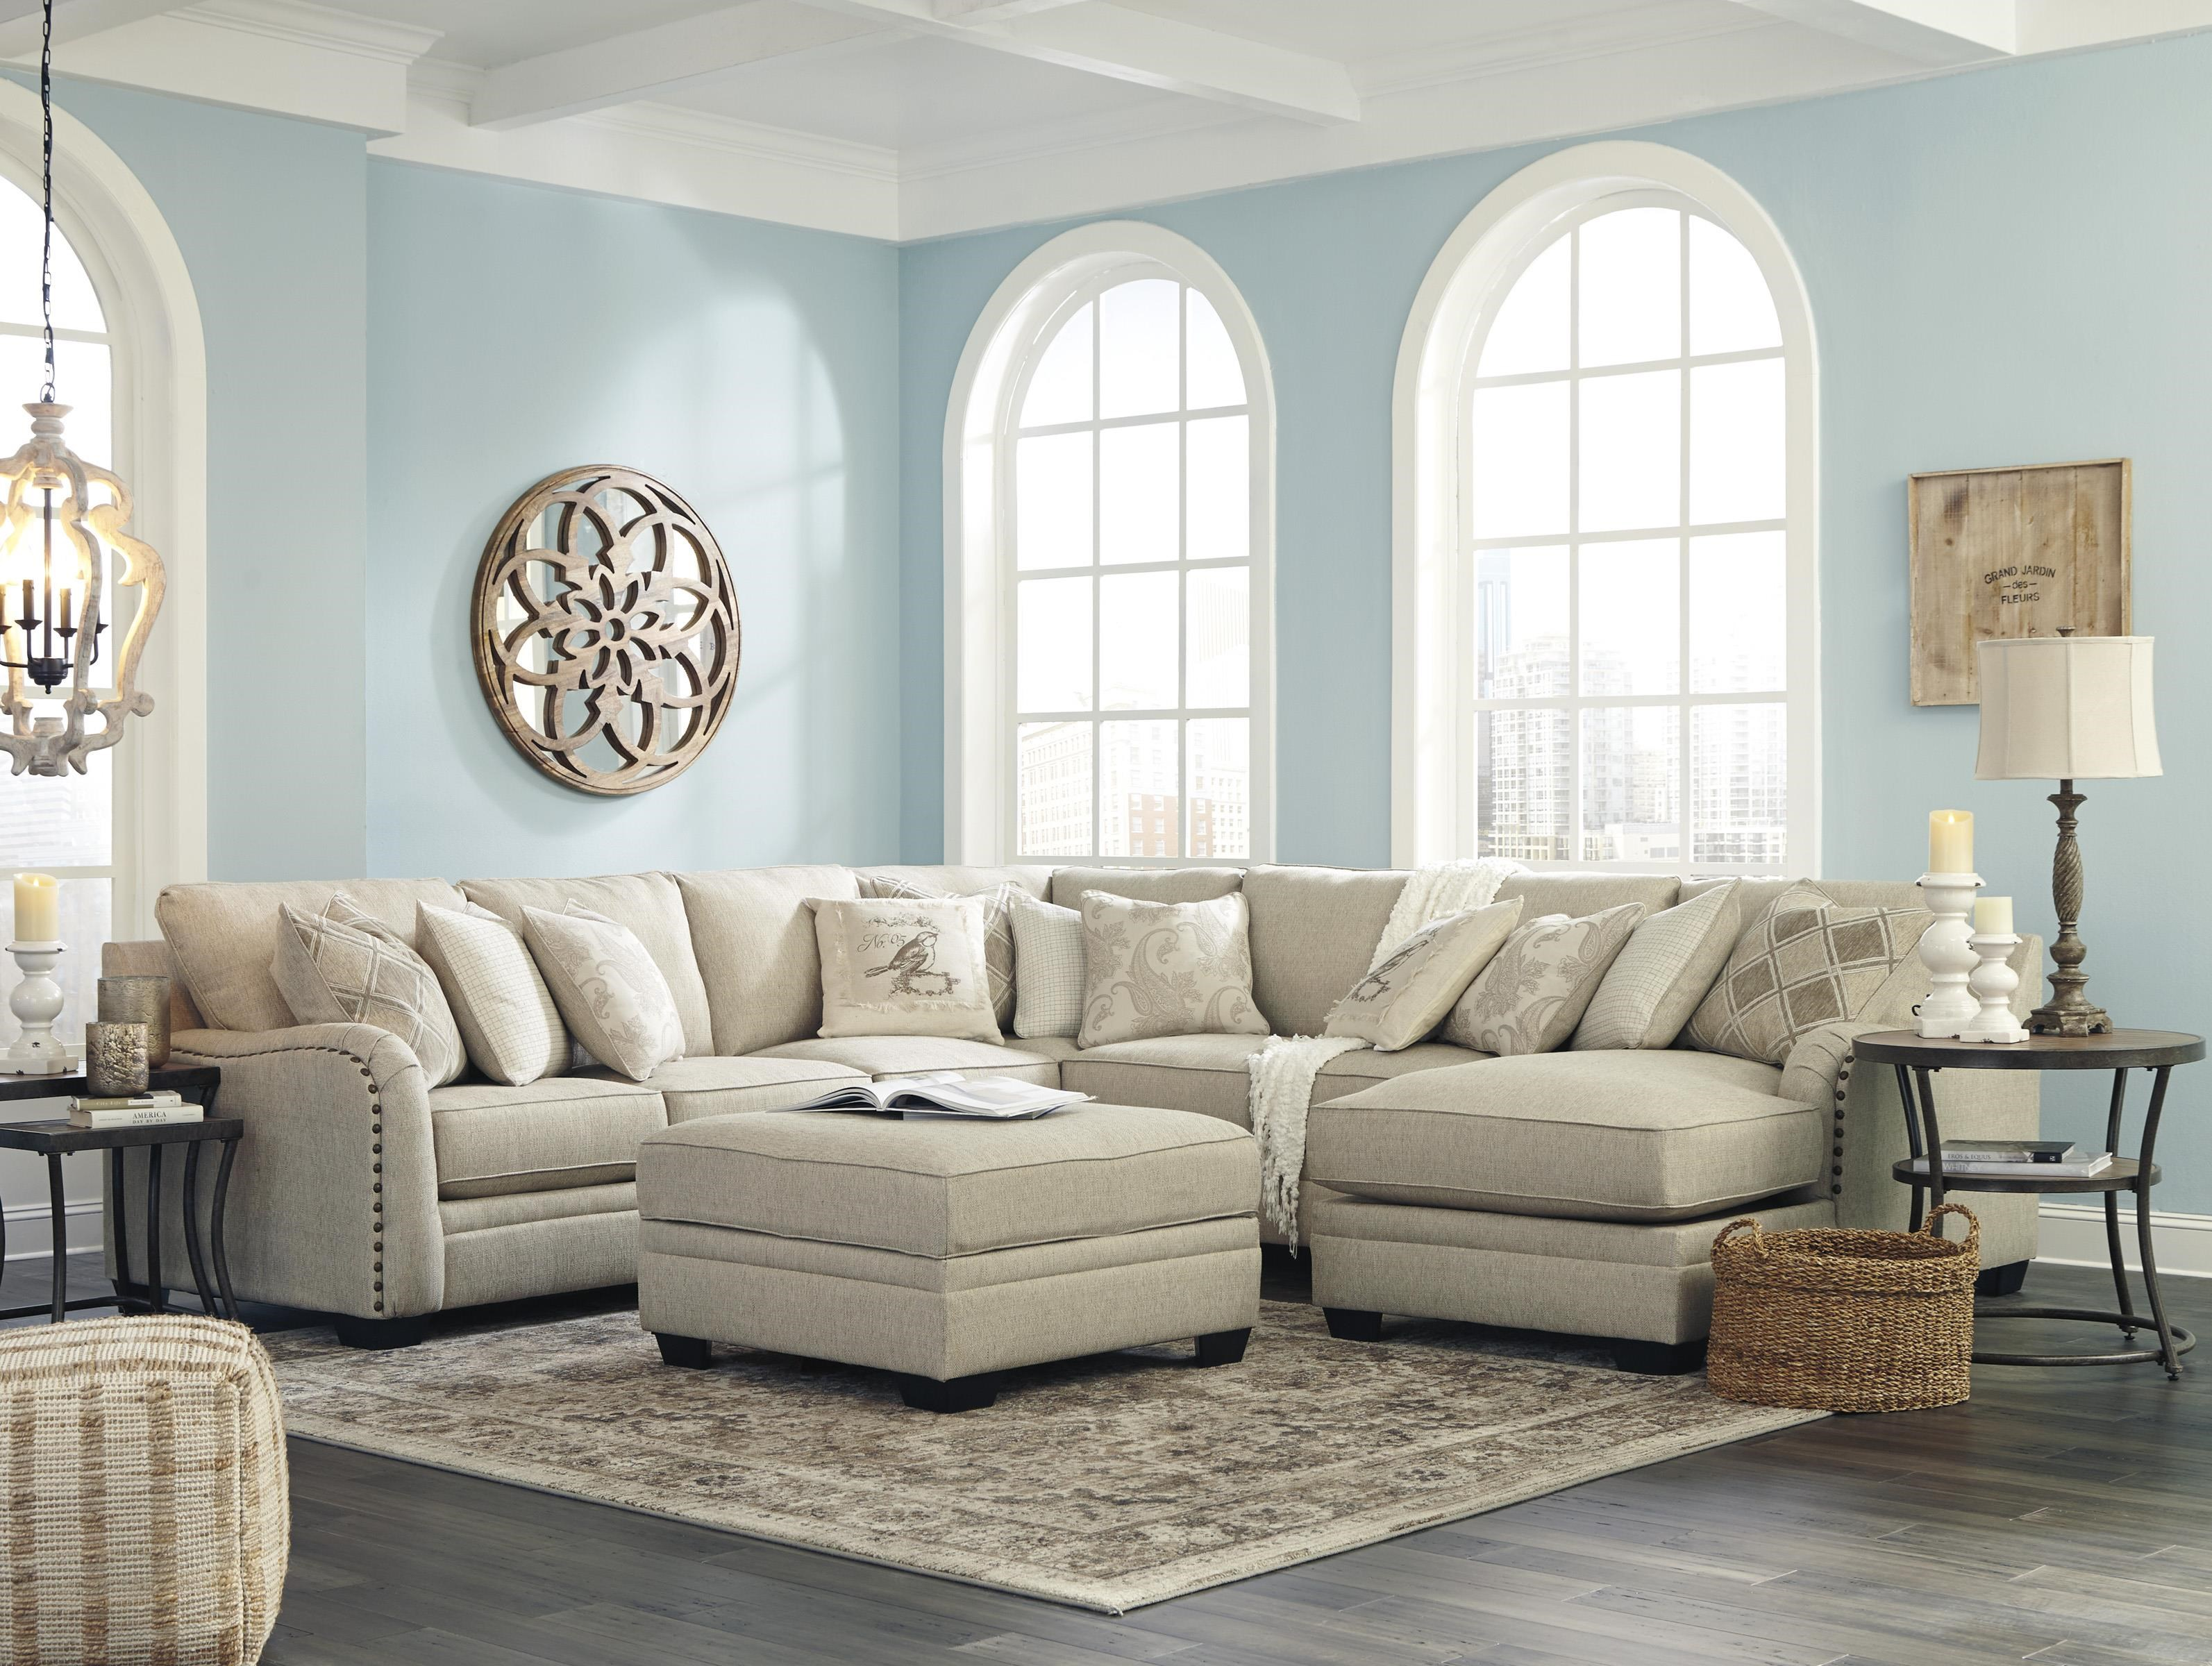 Luxora 5 Piece Sofa Sectional and Ottoman Set by Ashley Furniture at Sam Levitz Furniture